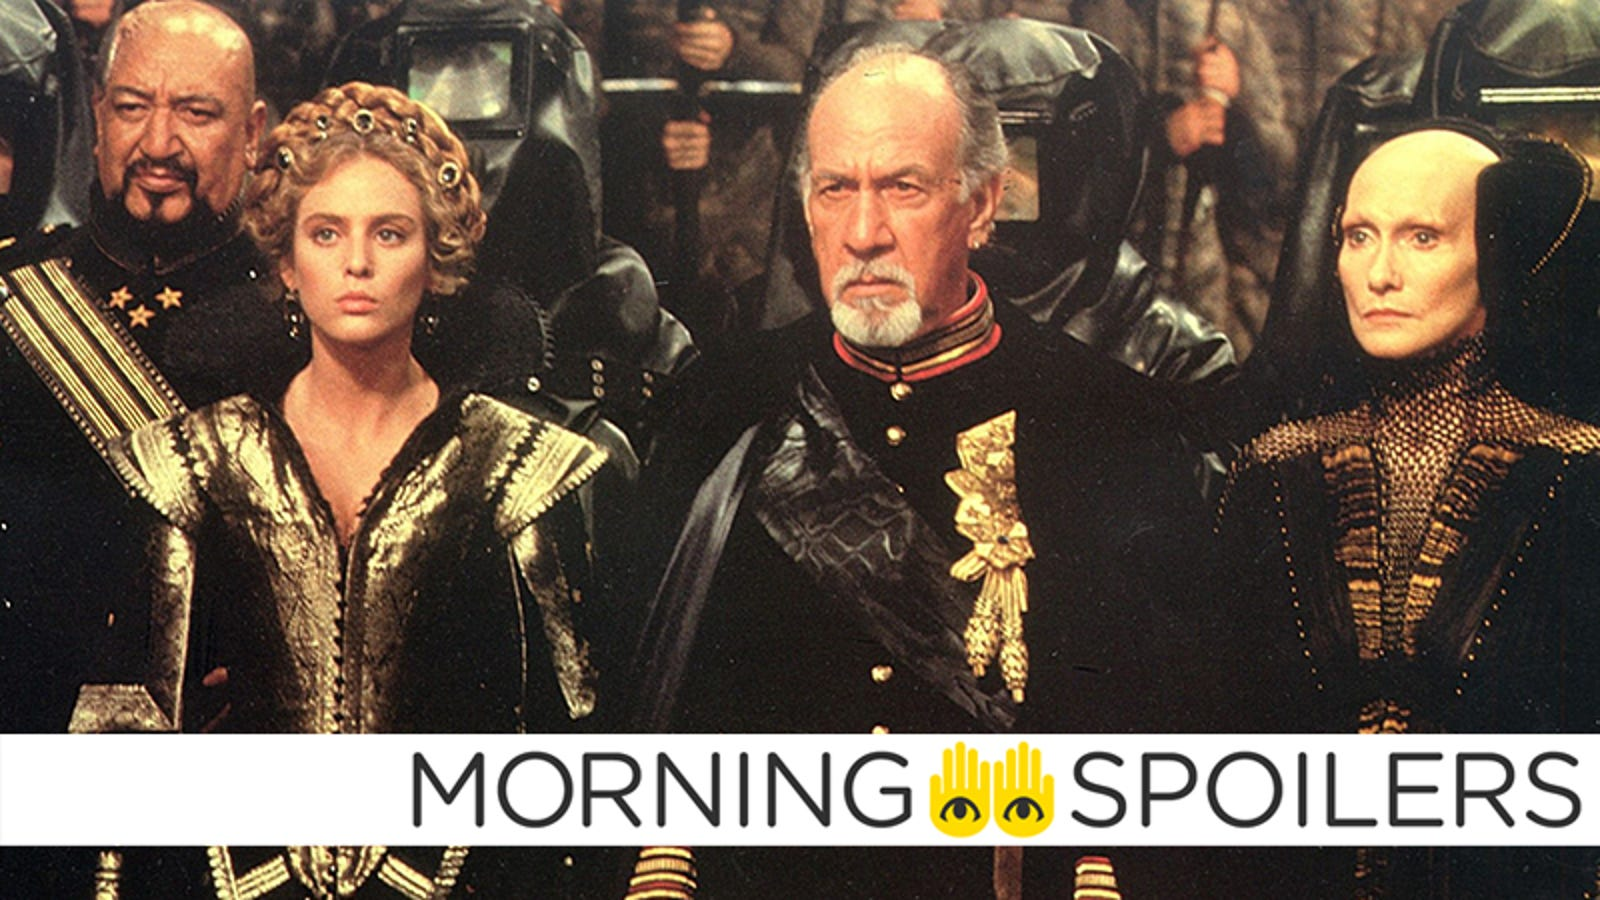 Updates on Dune, the Game of Thrones Prequel, and More